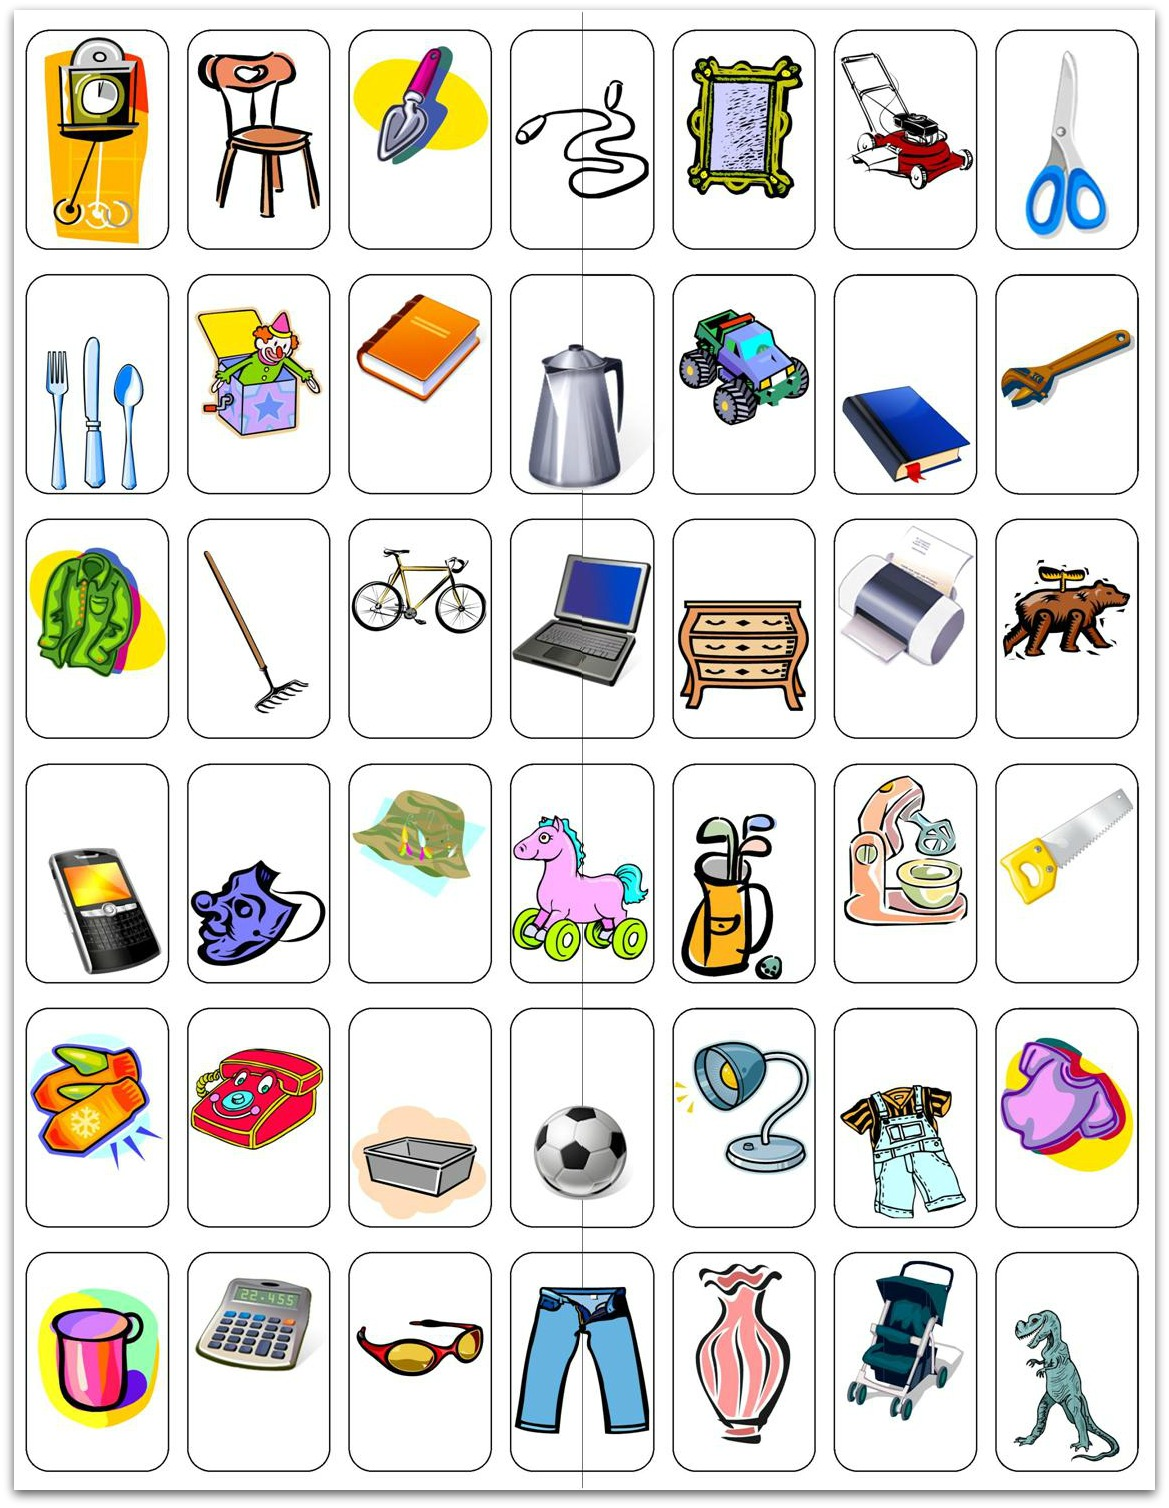 Activities clipart board game. Relentlessly fun deceptively educational